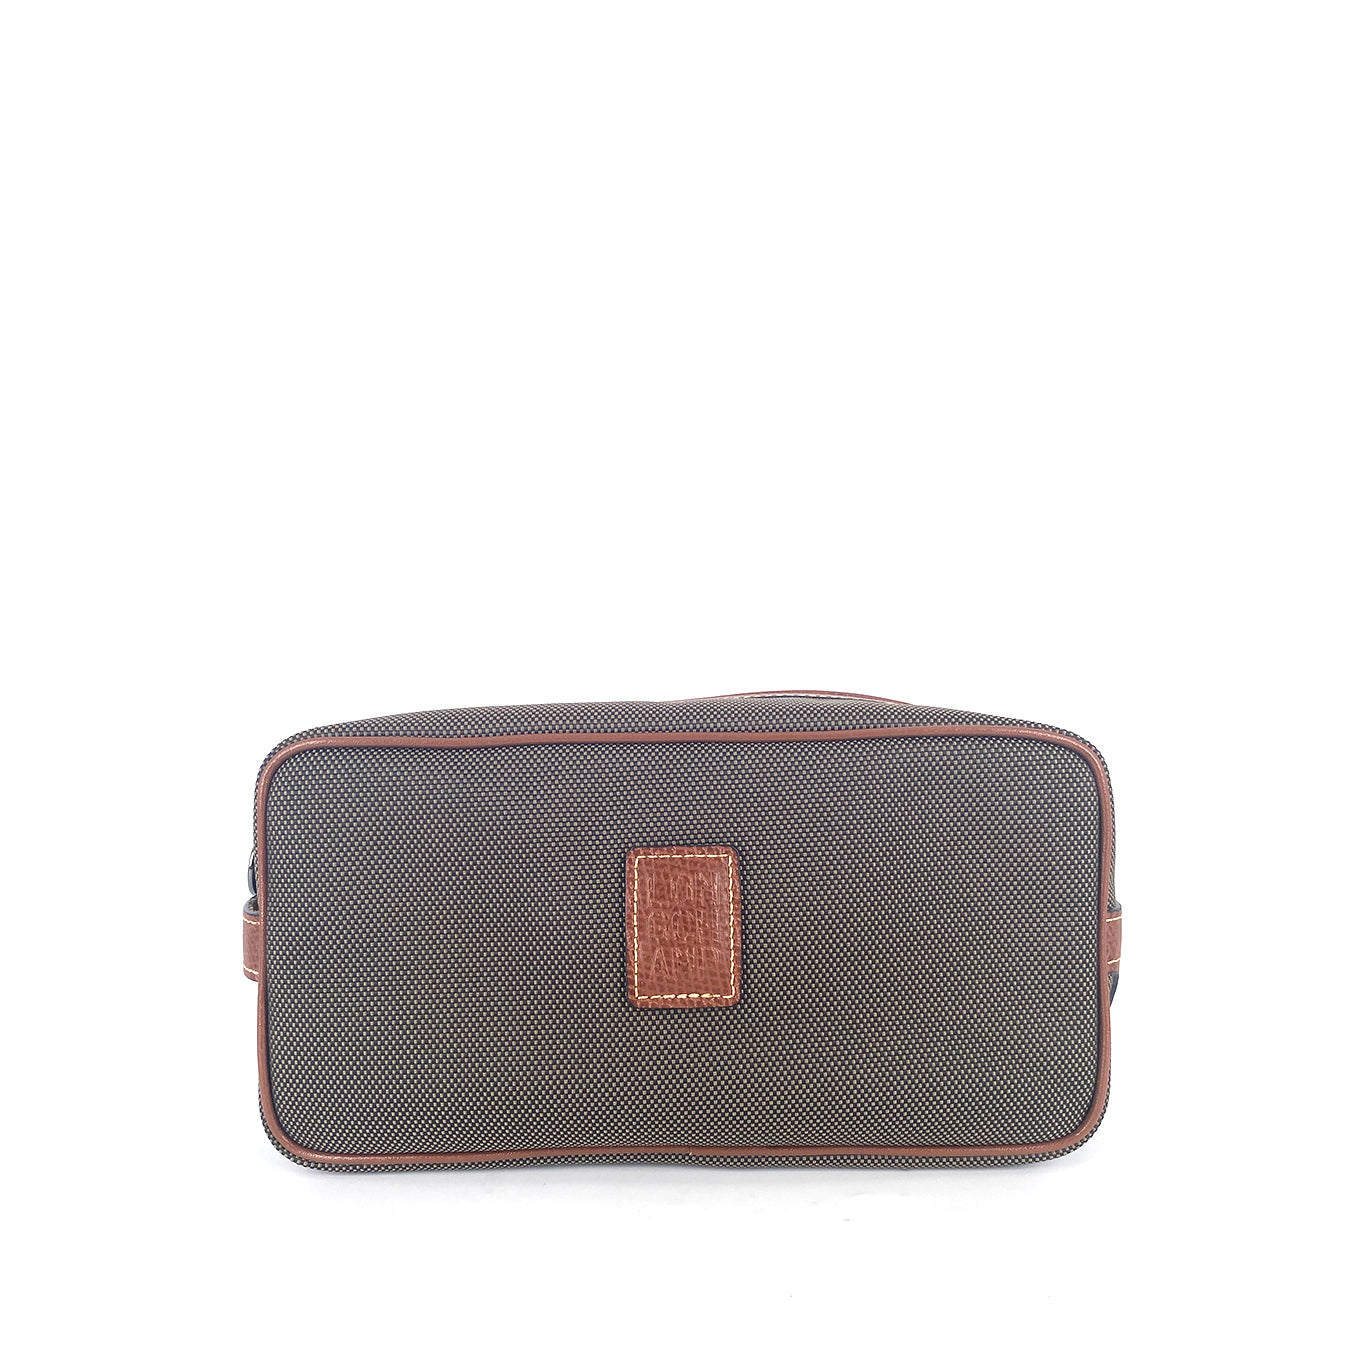 Longchamp Pouch Cosmetic Canvas Medium in Brown